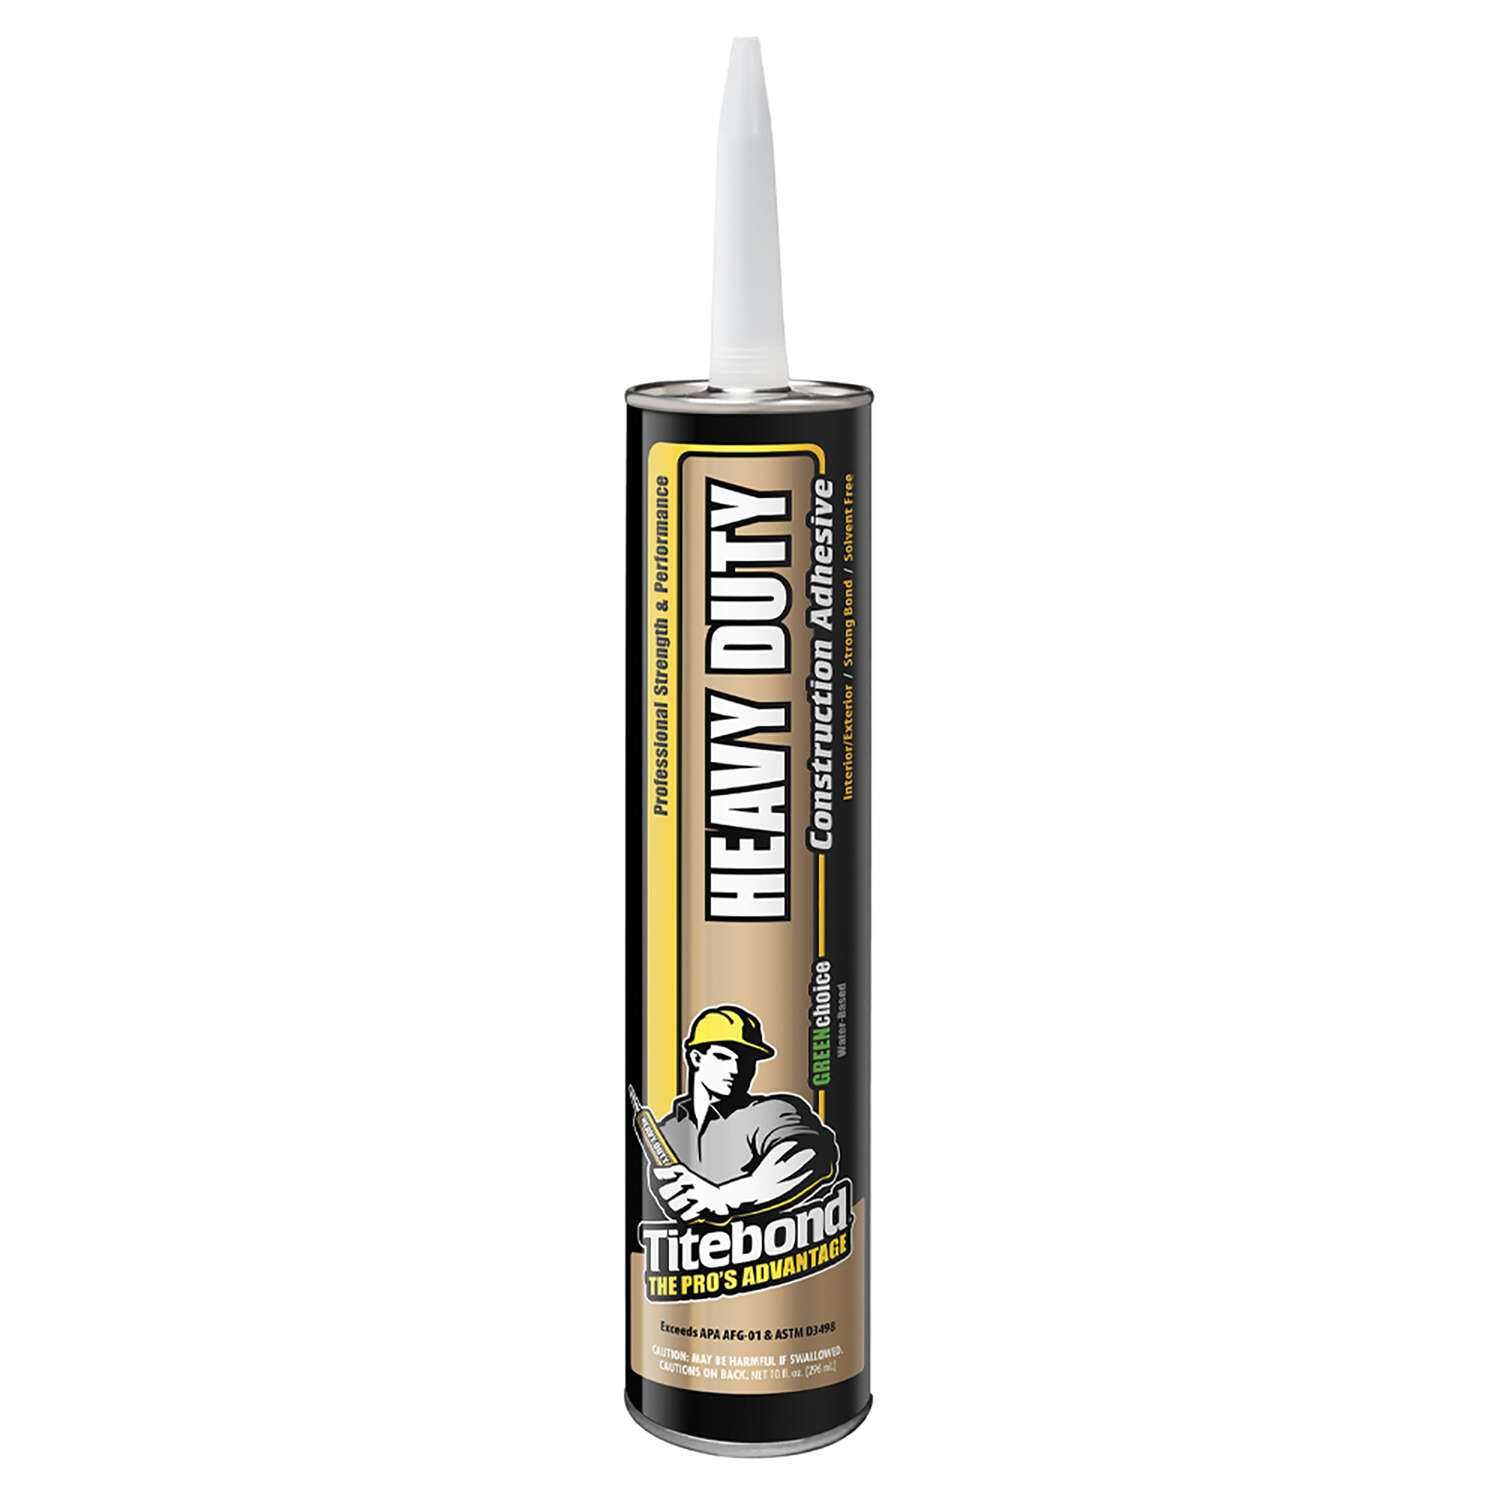 Titebond  GREENchoice  Polyurethane  Construction Adhesive  10.5 oz.